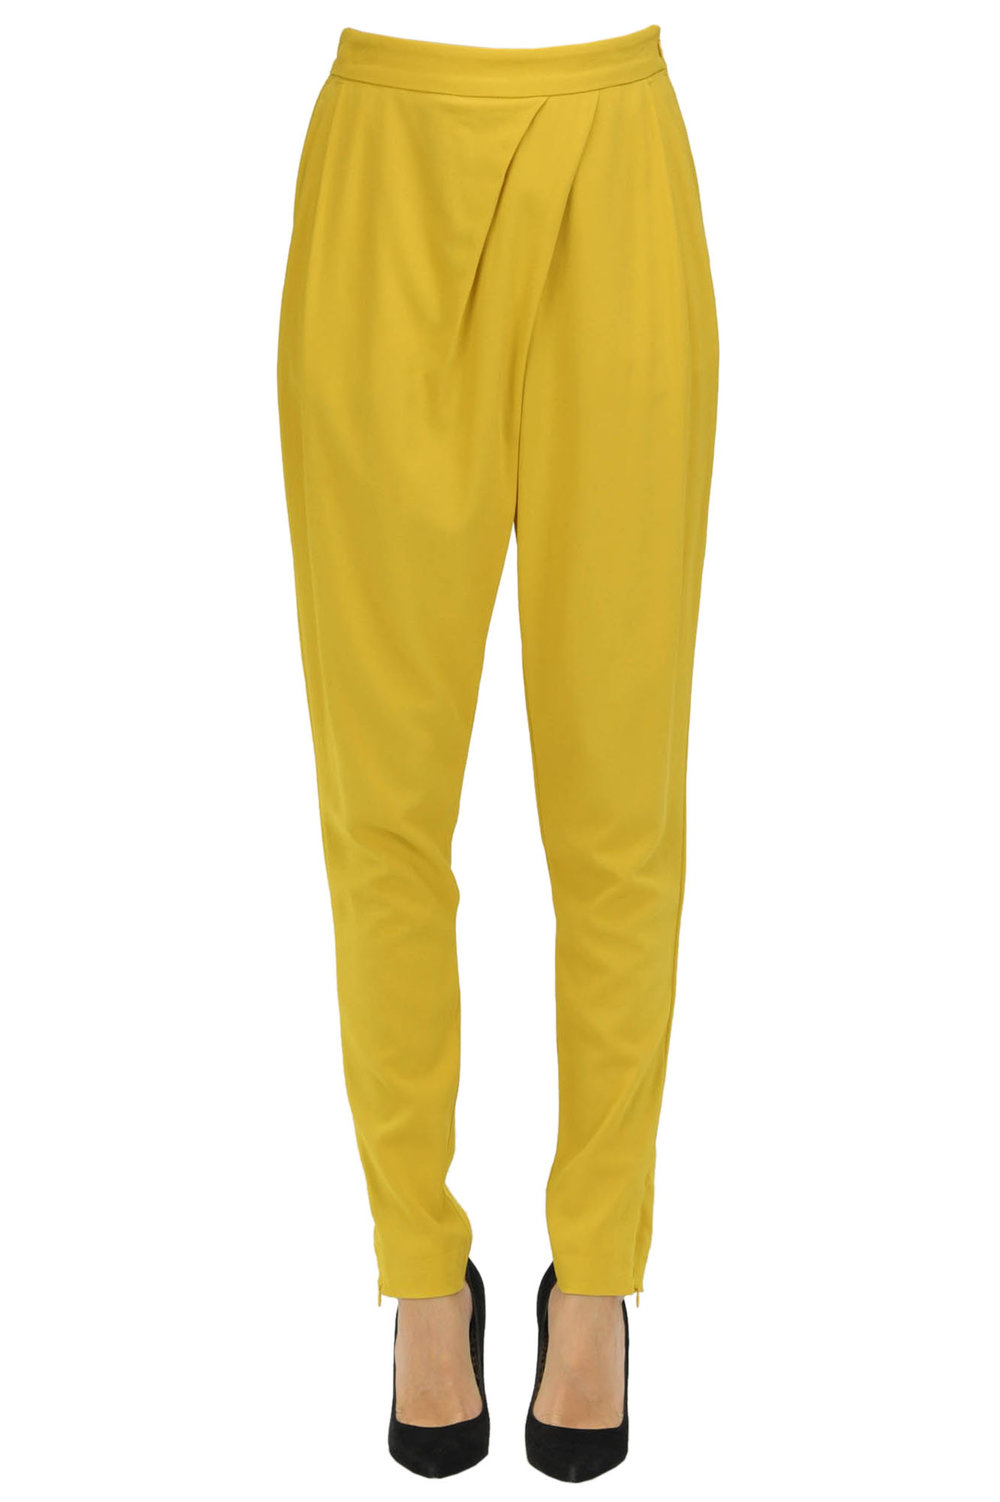 $123 - Chiave crepe trousers